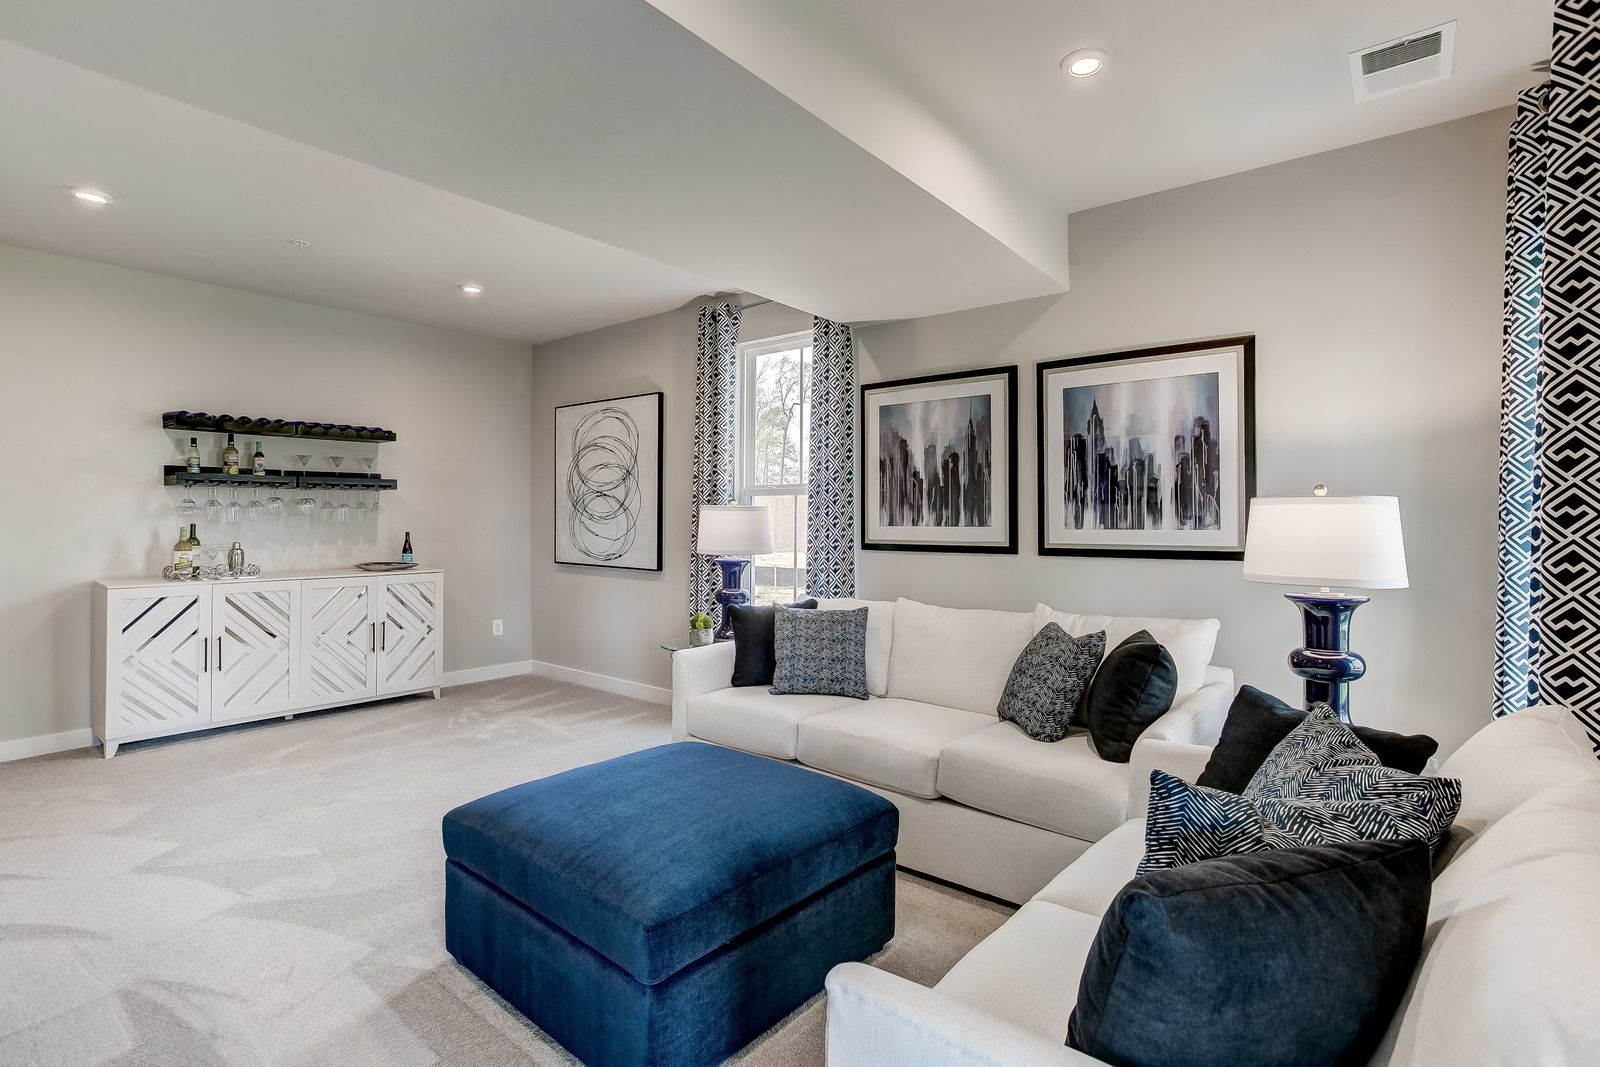 Living Area featured in the McPherson Front Garage By Ryan Homes in Washington, MD